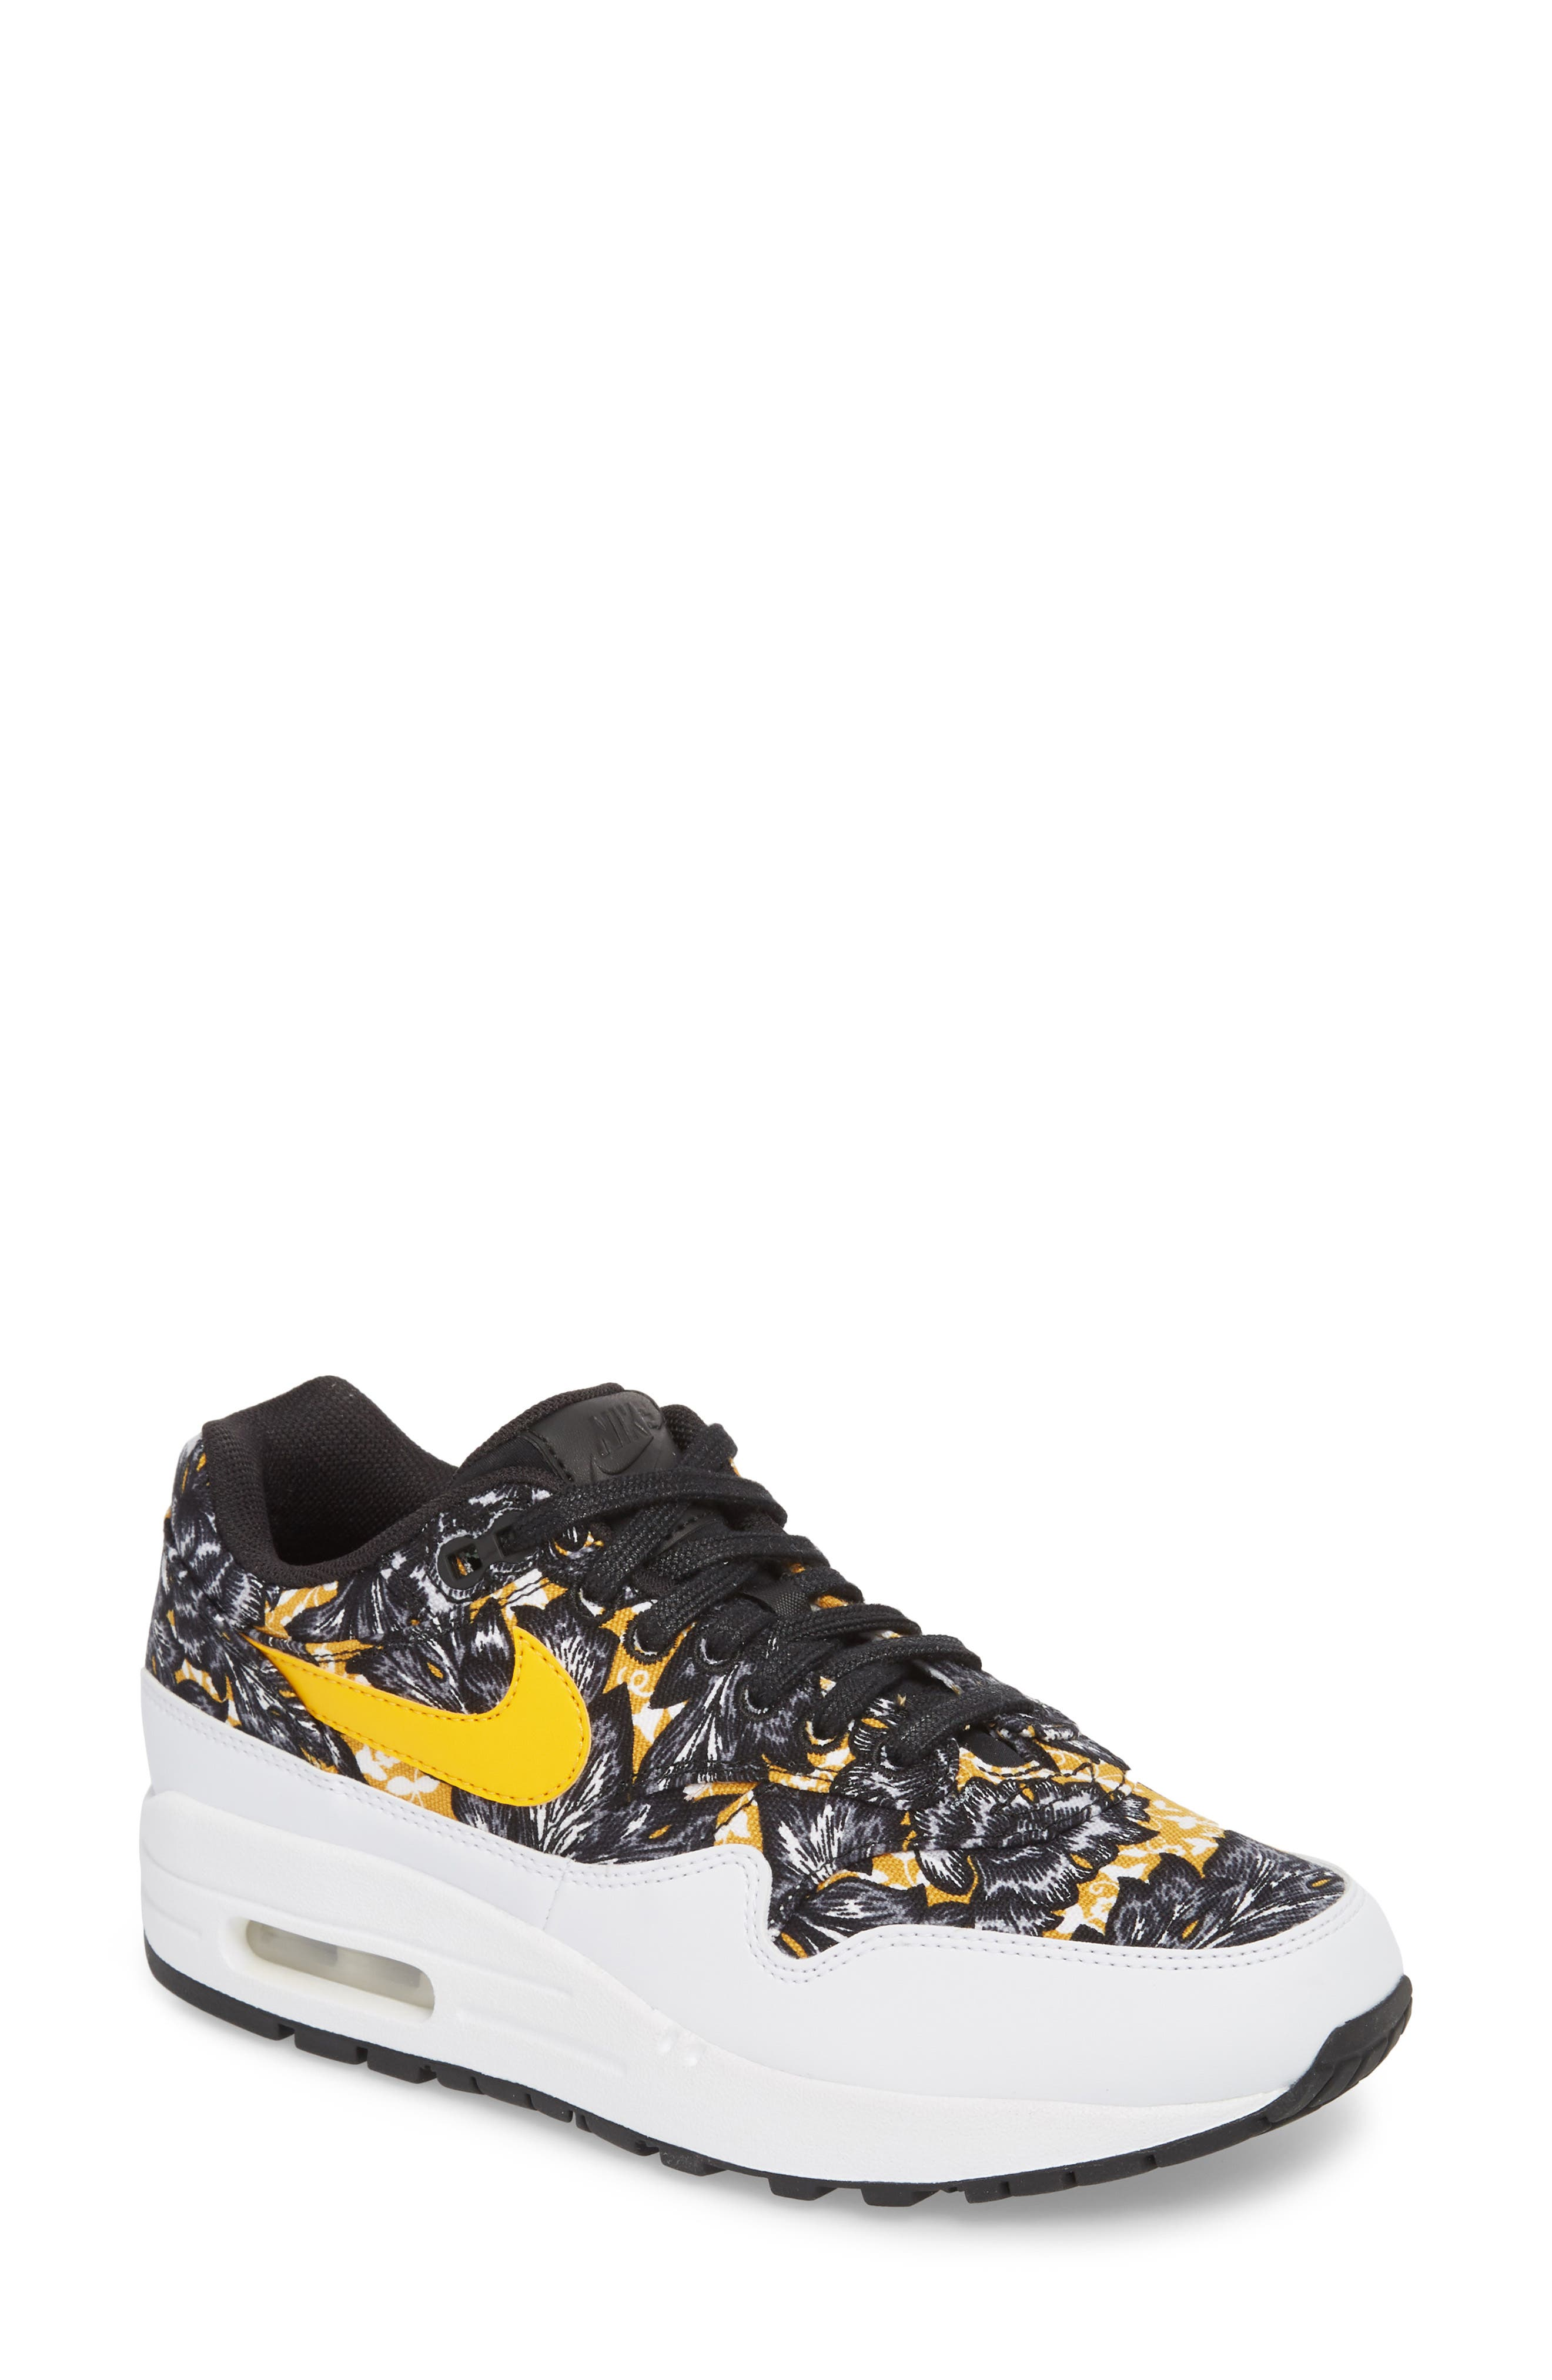 Air Max 1 QS Sneaker,                             Main thumbnail 1, color,                             White/ University Gold/ Black